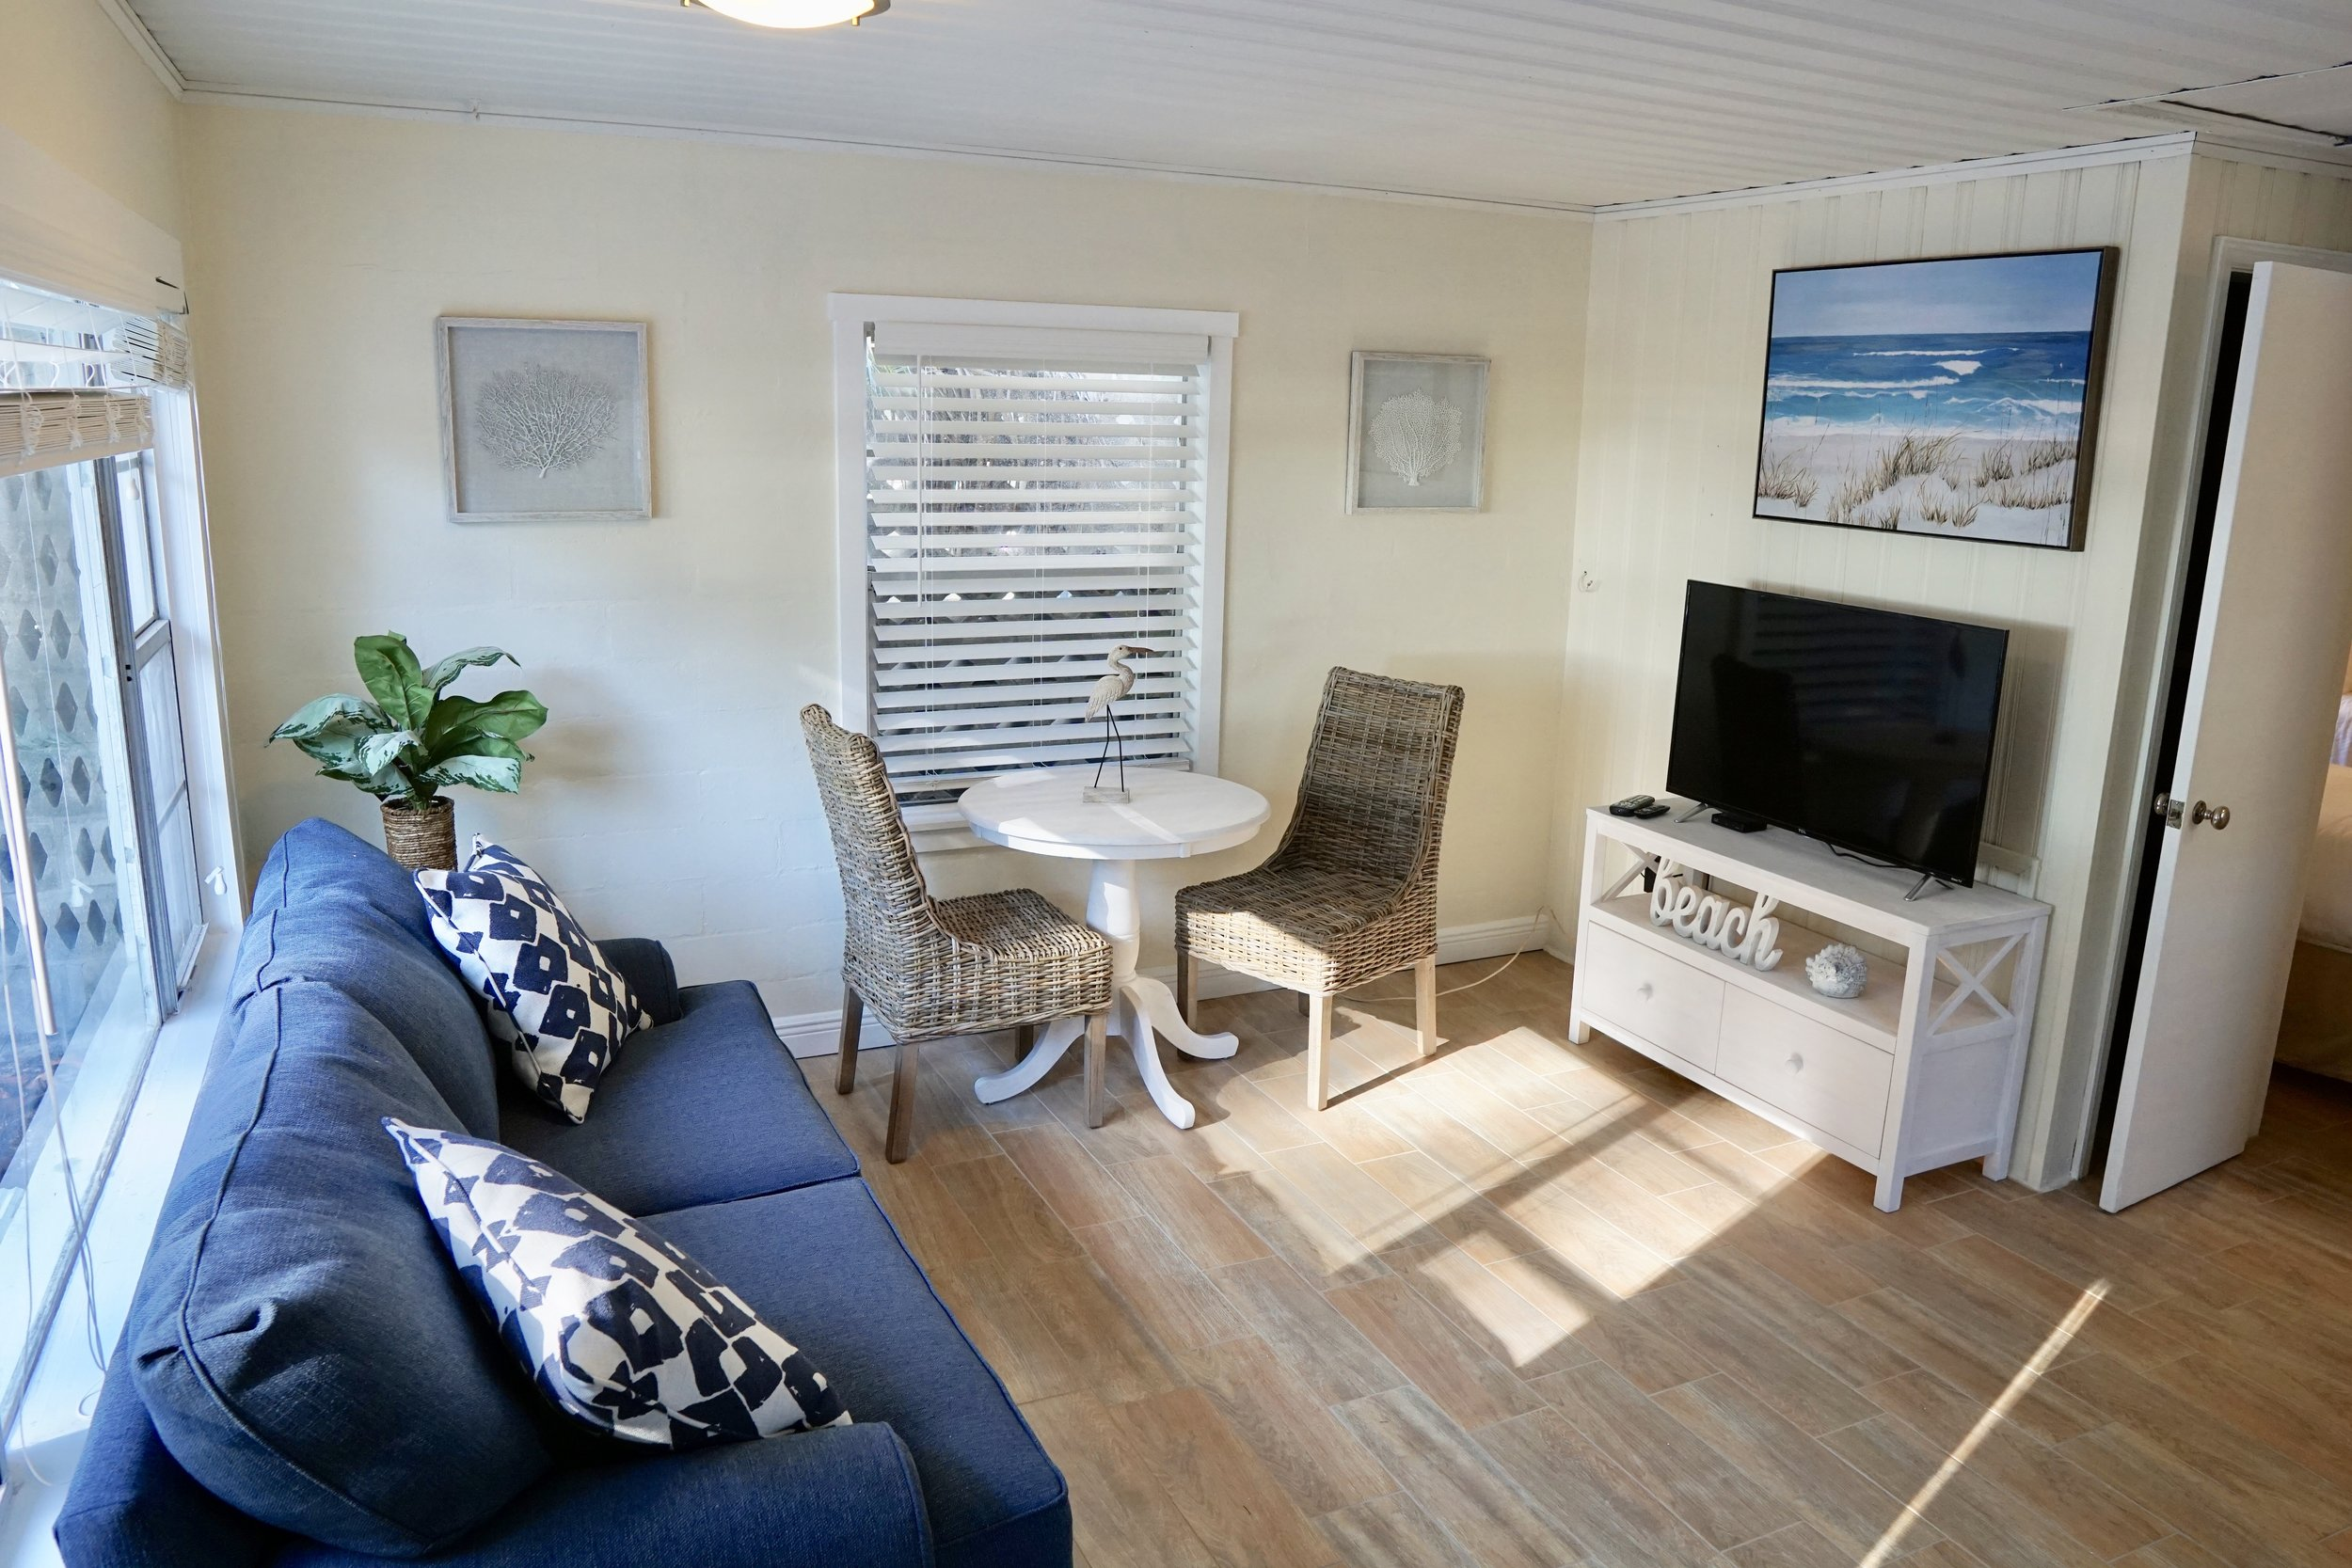 One-Bedroom Cottage: Gulf View - The cottages feature the same layout as the One-Bedroom Suites. The room comes with one full and one twin bed. The cottages are their own structure separate from the main building.